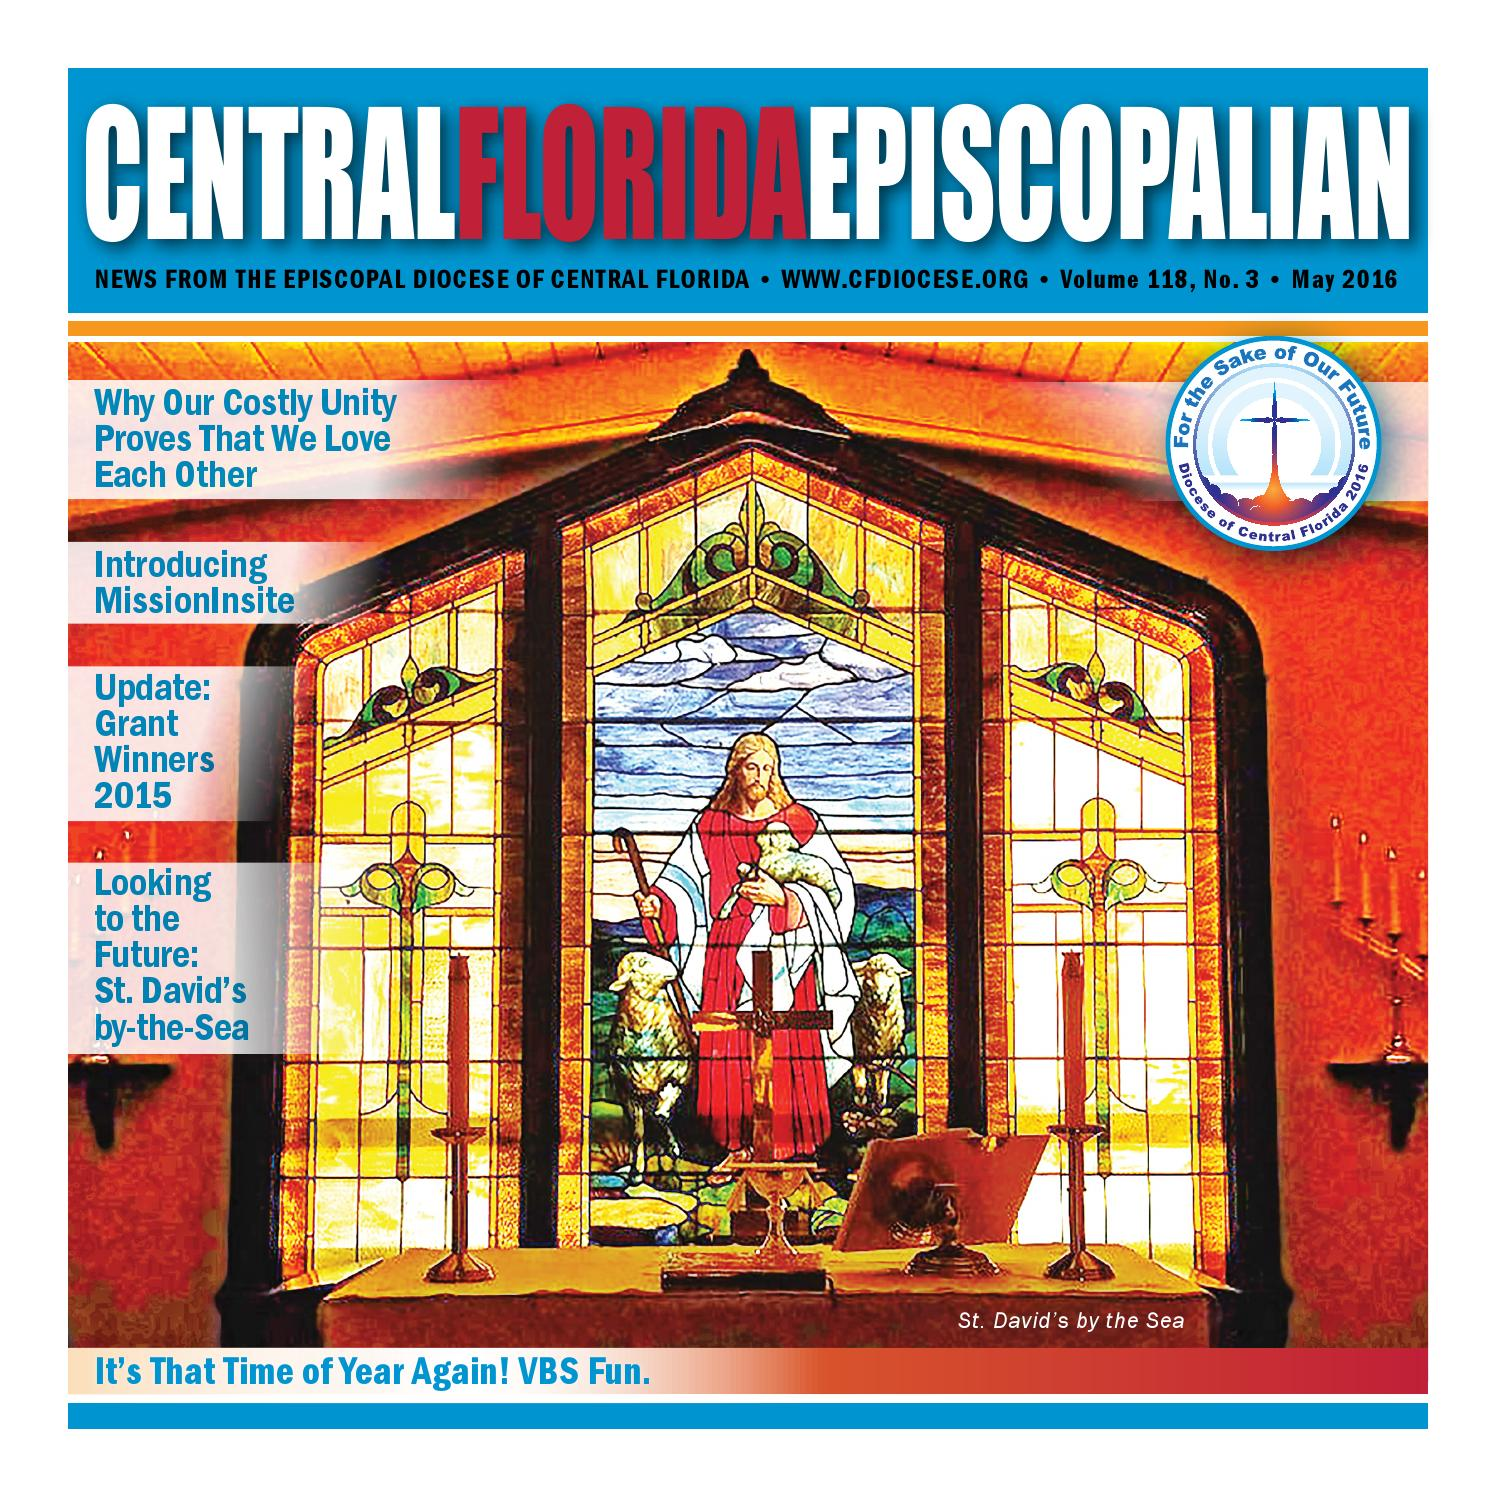 central florida episcopalian newspaper may 2016 by central